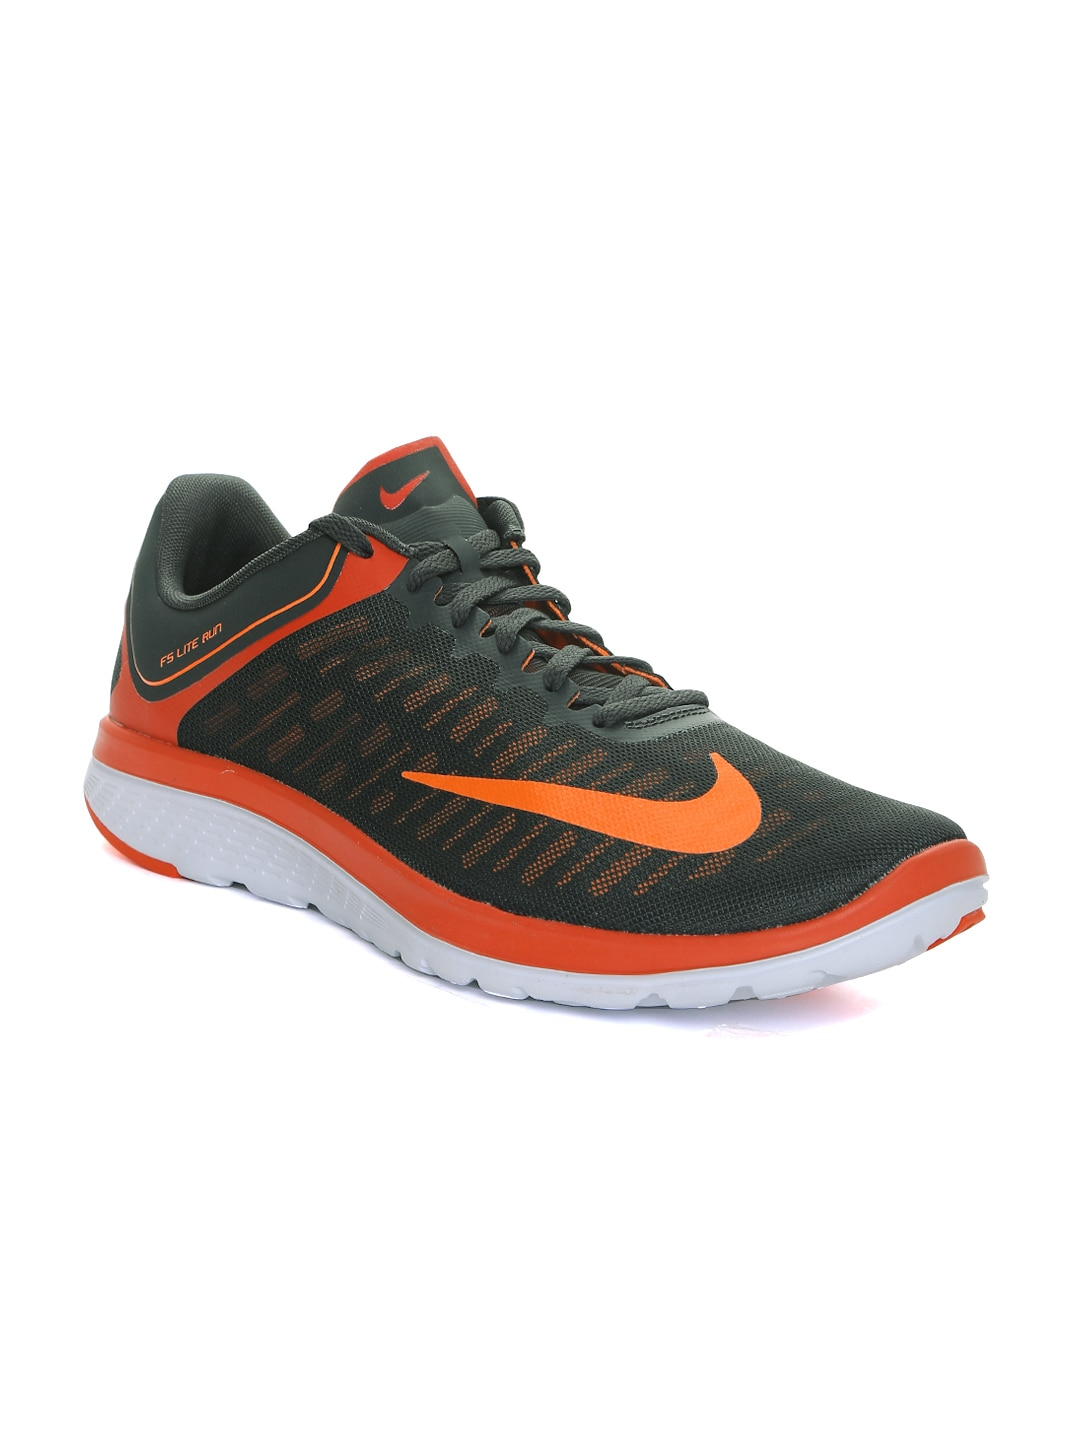 Cheap Nike Men's Free 5.0 Breathe Running Shoe Synthetic